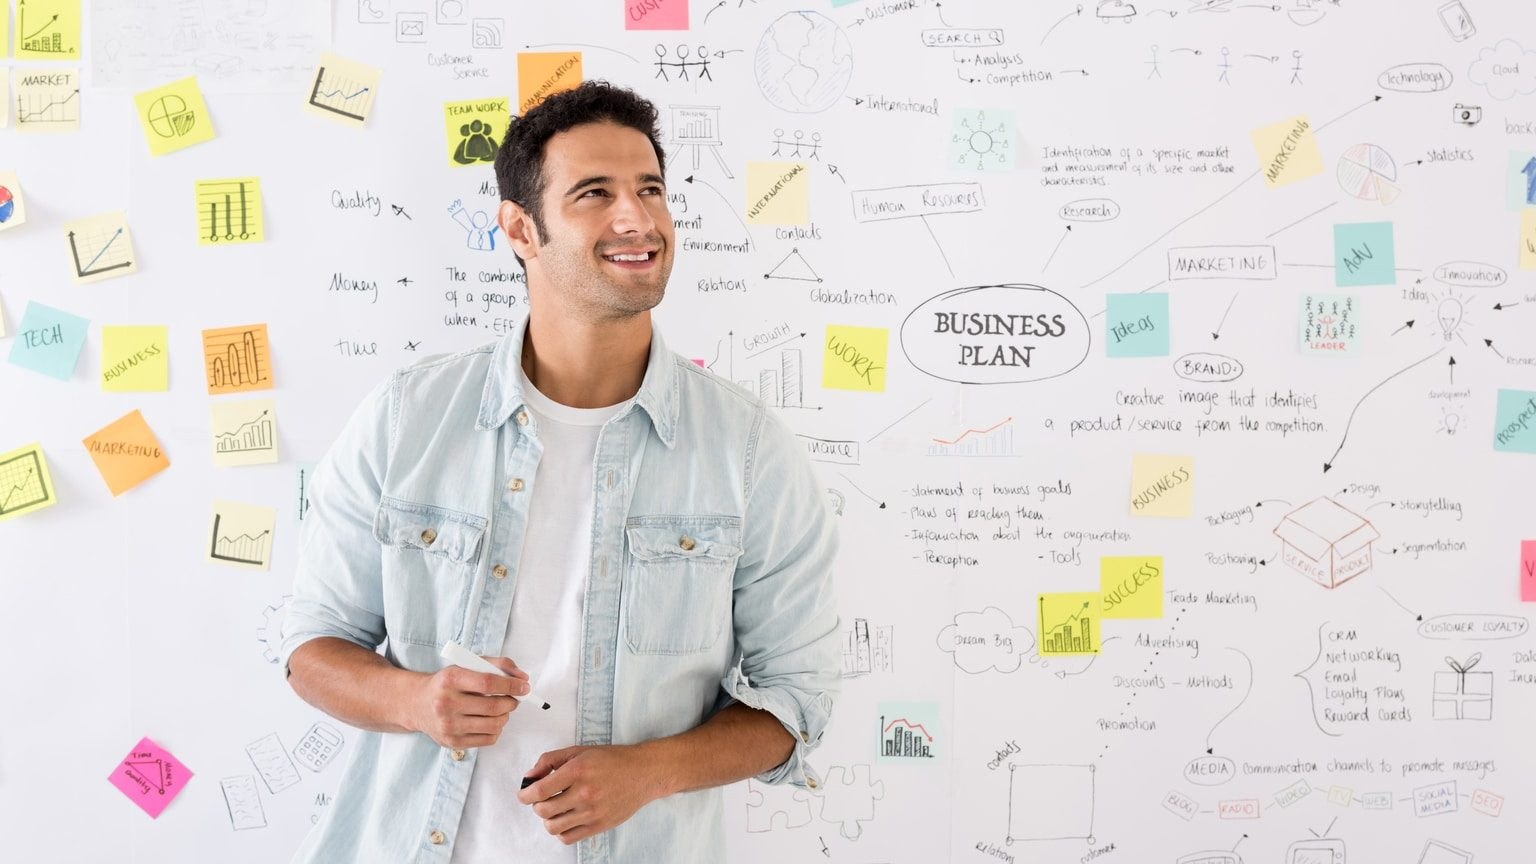 Man brainstorming ideas for a business plan